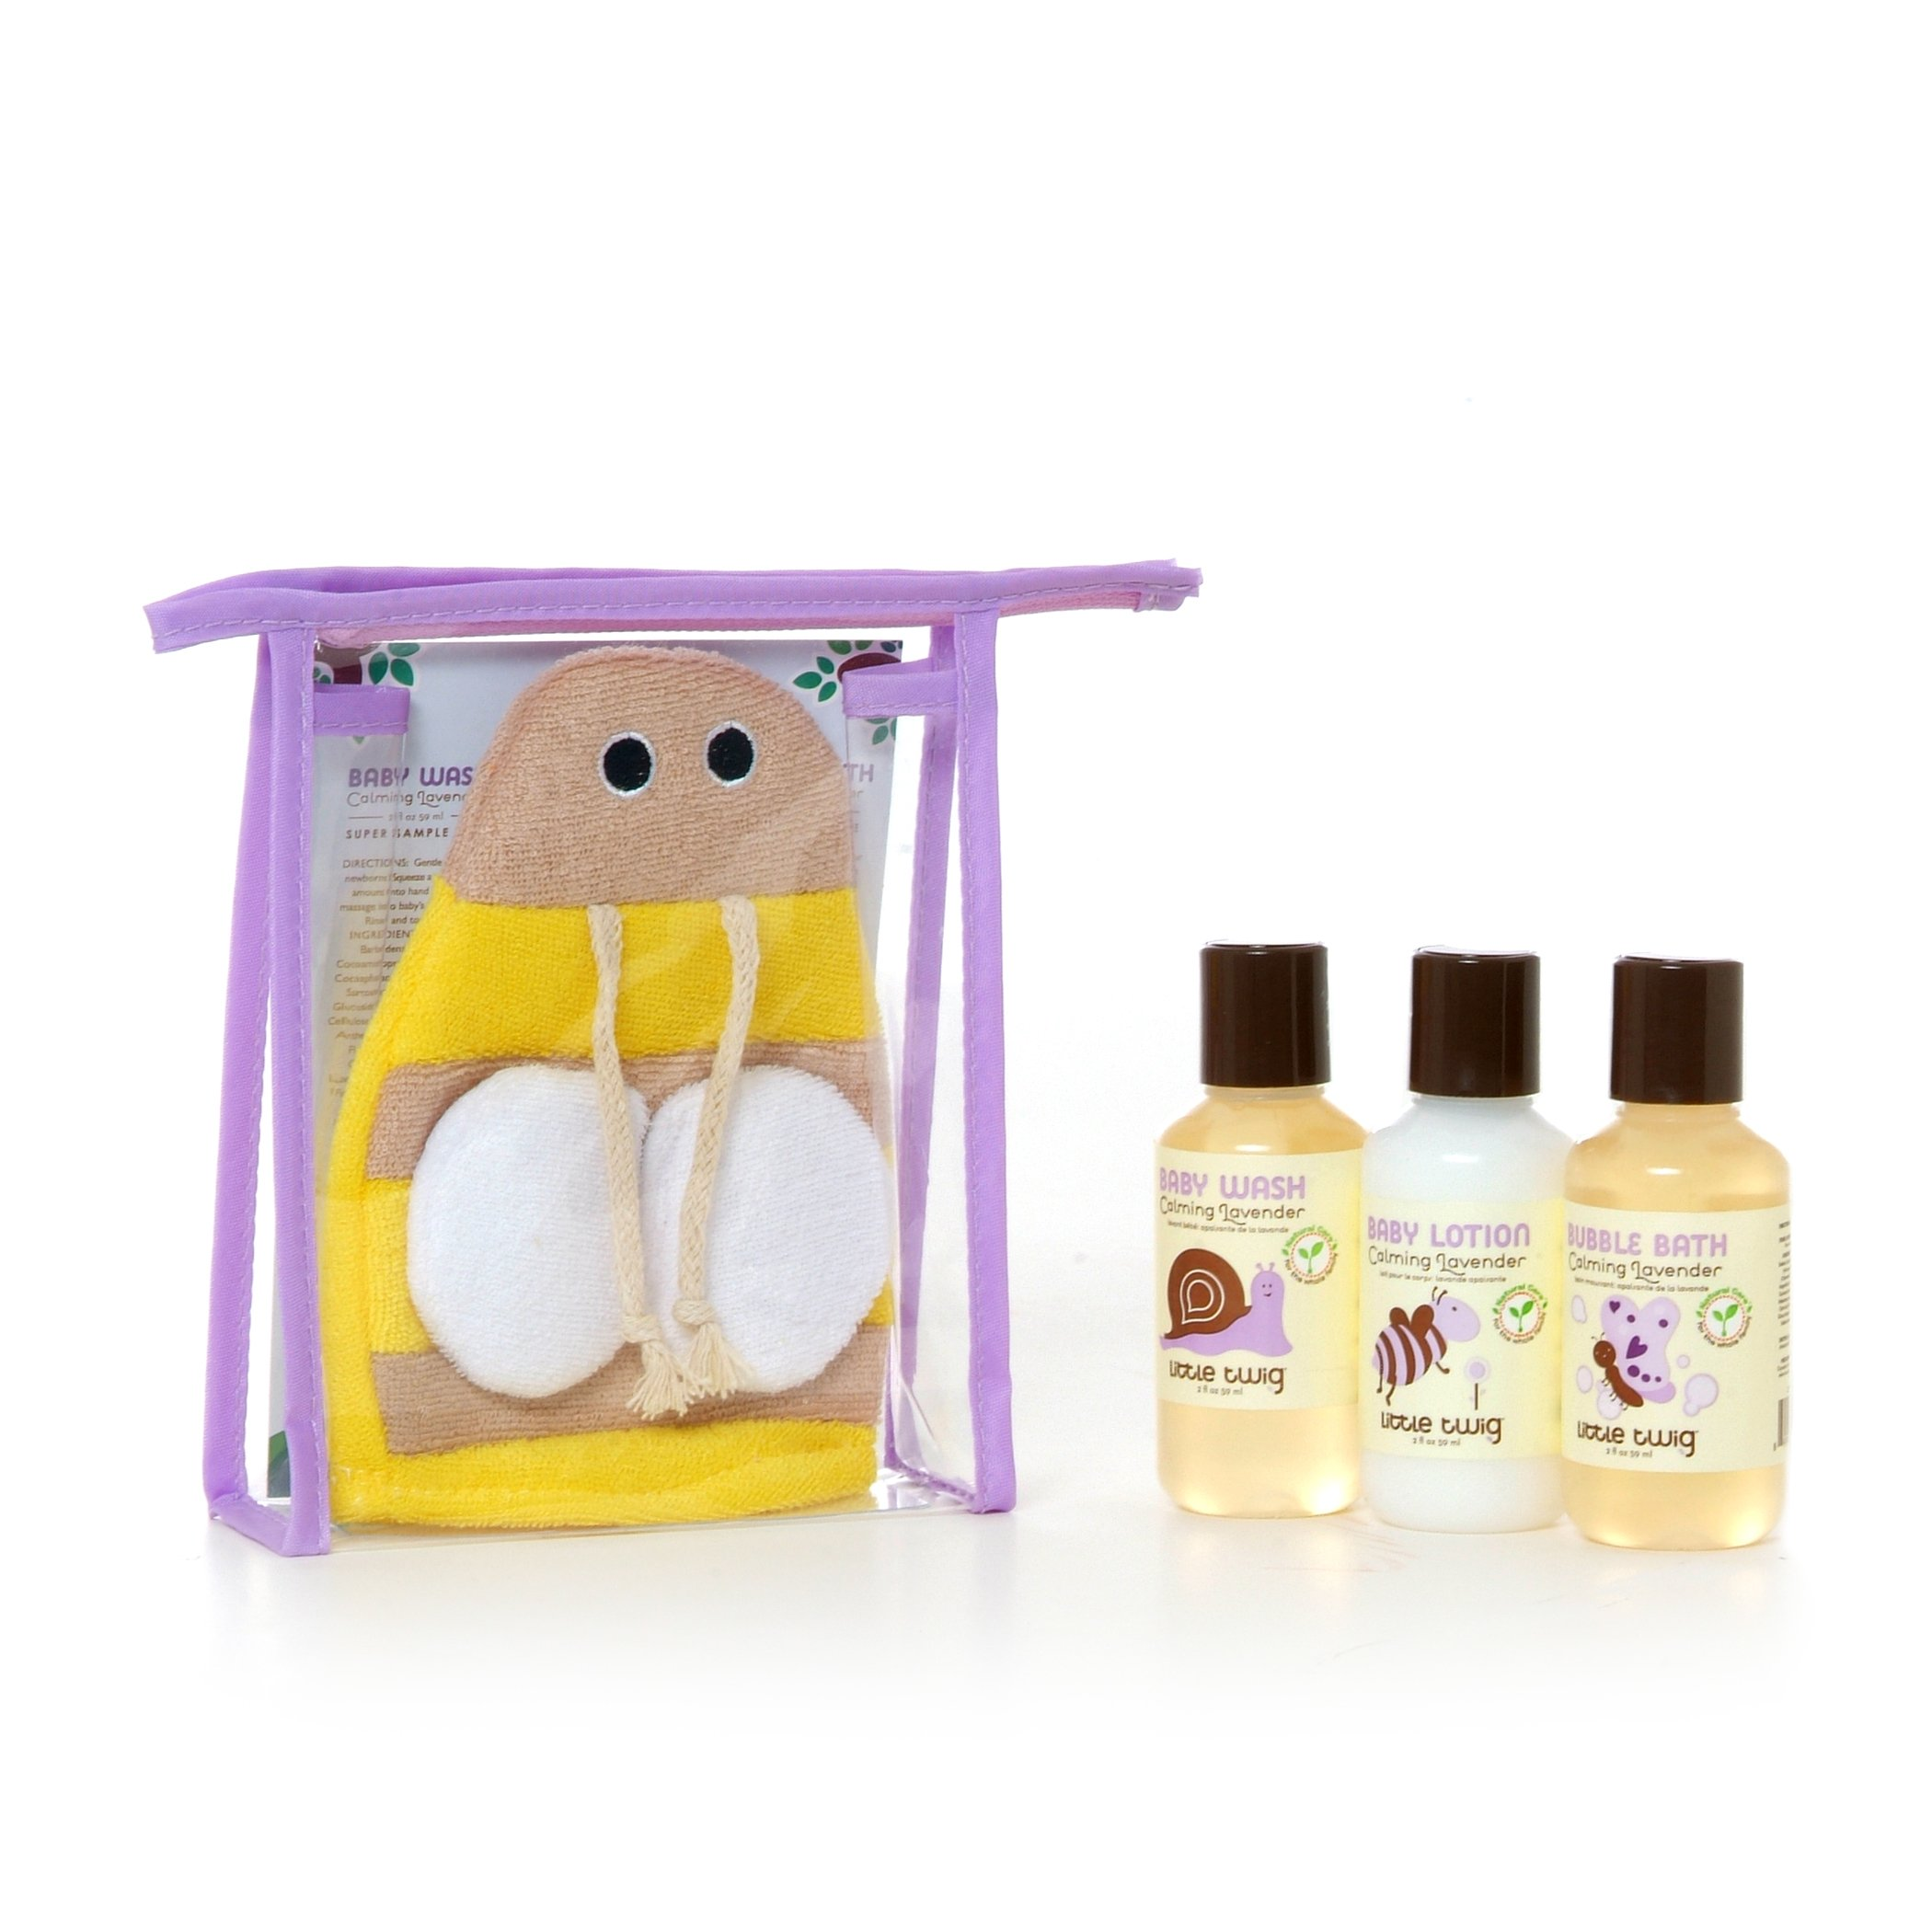 Little Twig All Natural Baby Travel Basics Bee Set with Baby Bubble Bath, Lotion, Body Wash, and Bath Mitt, Lavender